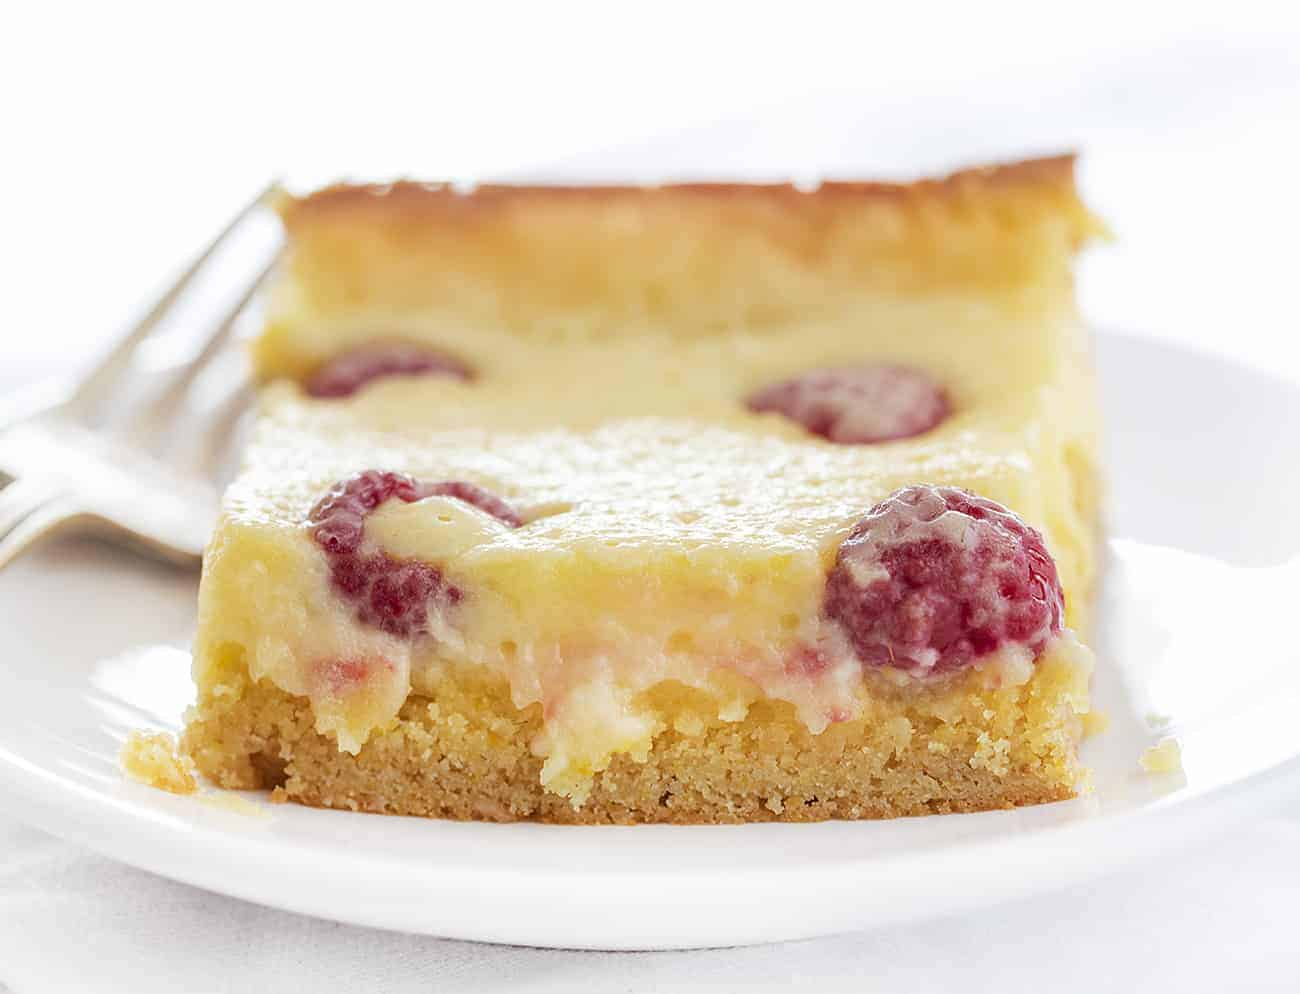 One Piece of Raspberry Lemon Ooey Gooey Cake